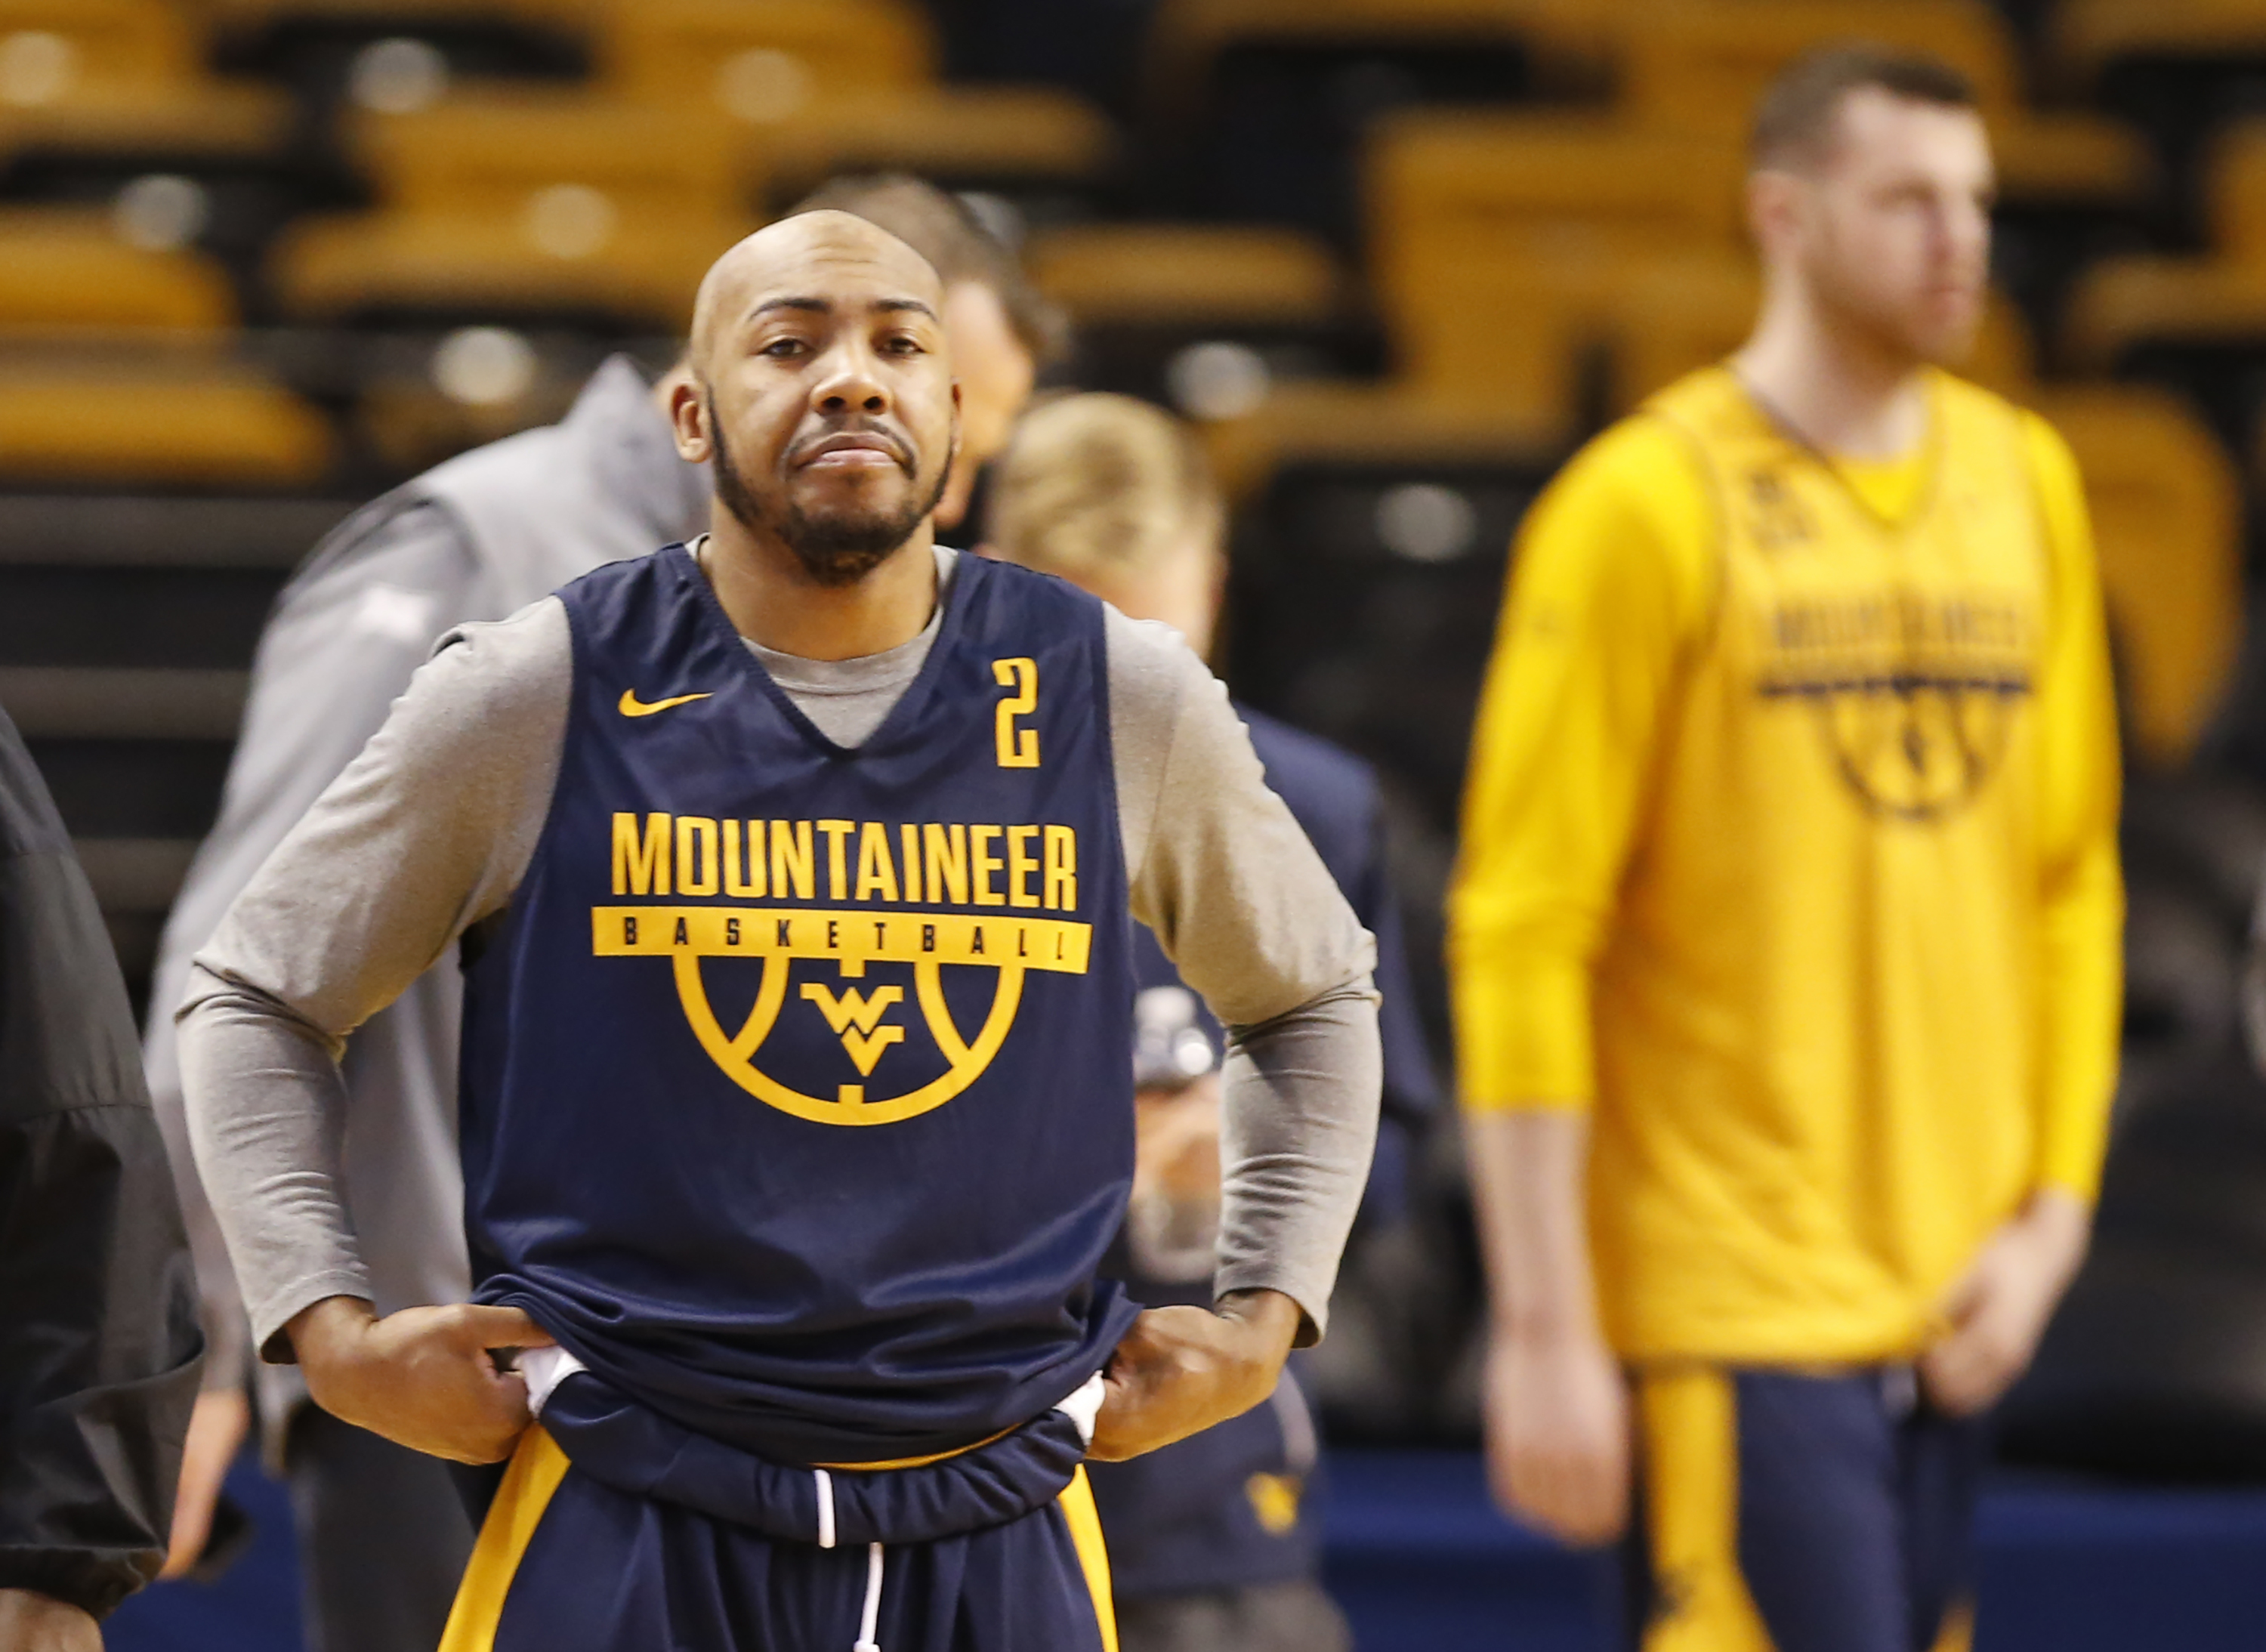 Jevon Carter, left, and the West Virginia team warm-up during their practice session in TD Garden on March 22, 2018. They will face Villanova in the round of 16 in the NCAA Tournament. CHARLES FOX / Staff Photographer